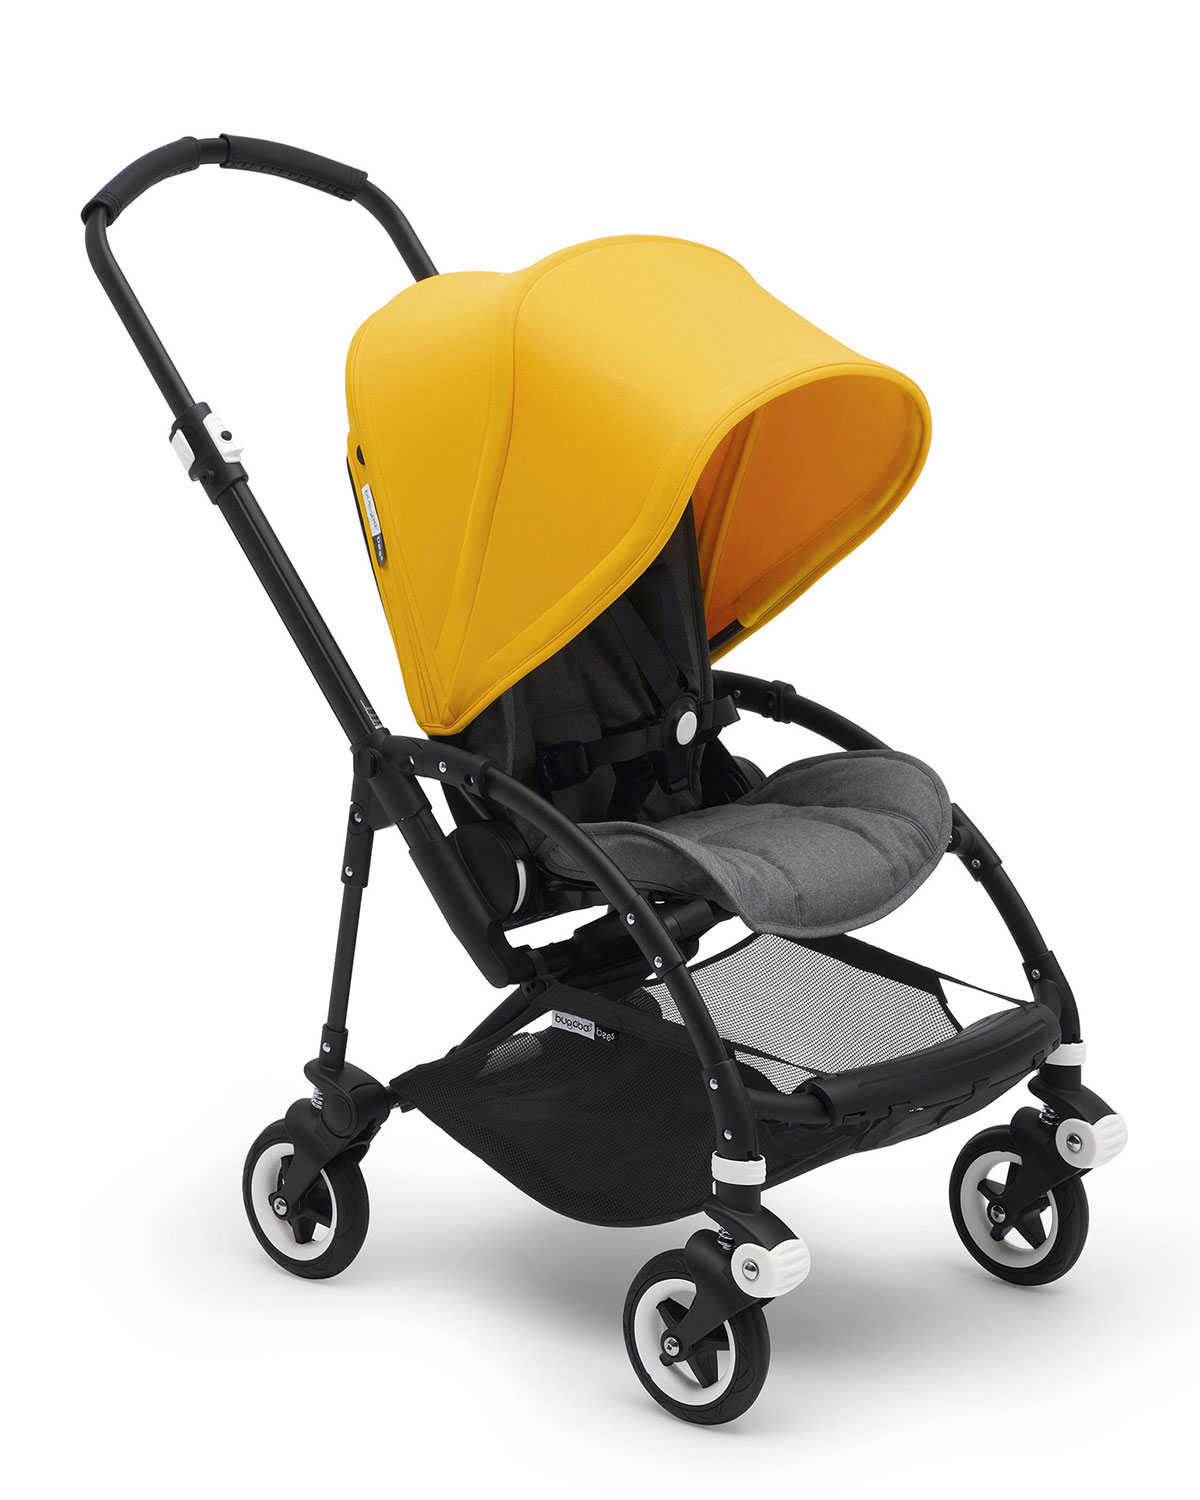 Bugaboo Bee⁵ Complete Stroller, Yellow / gray